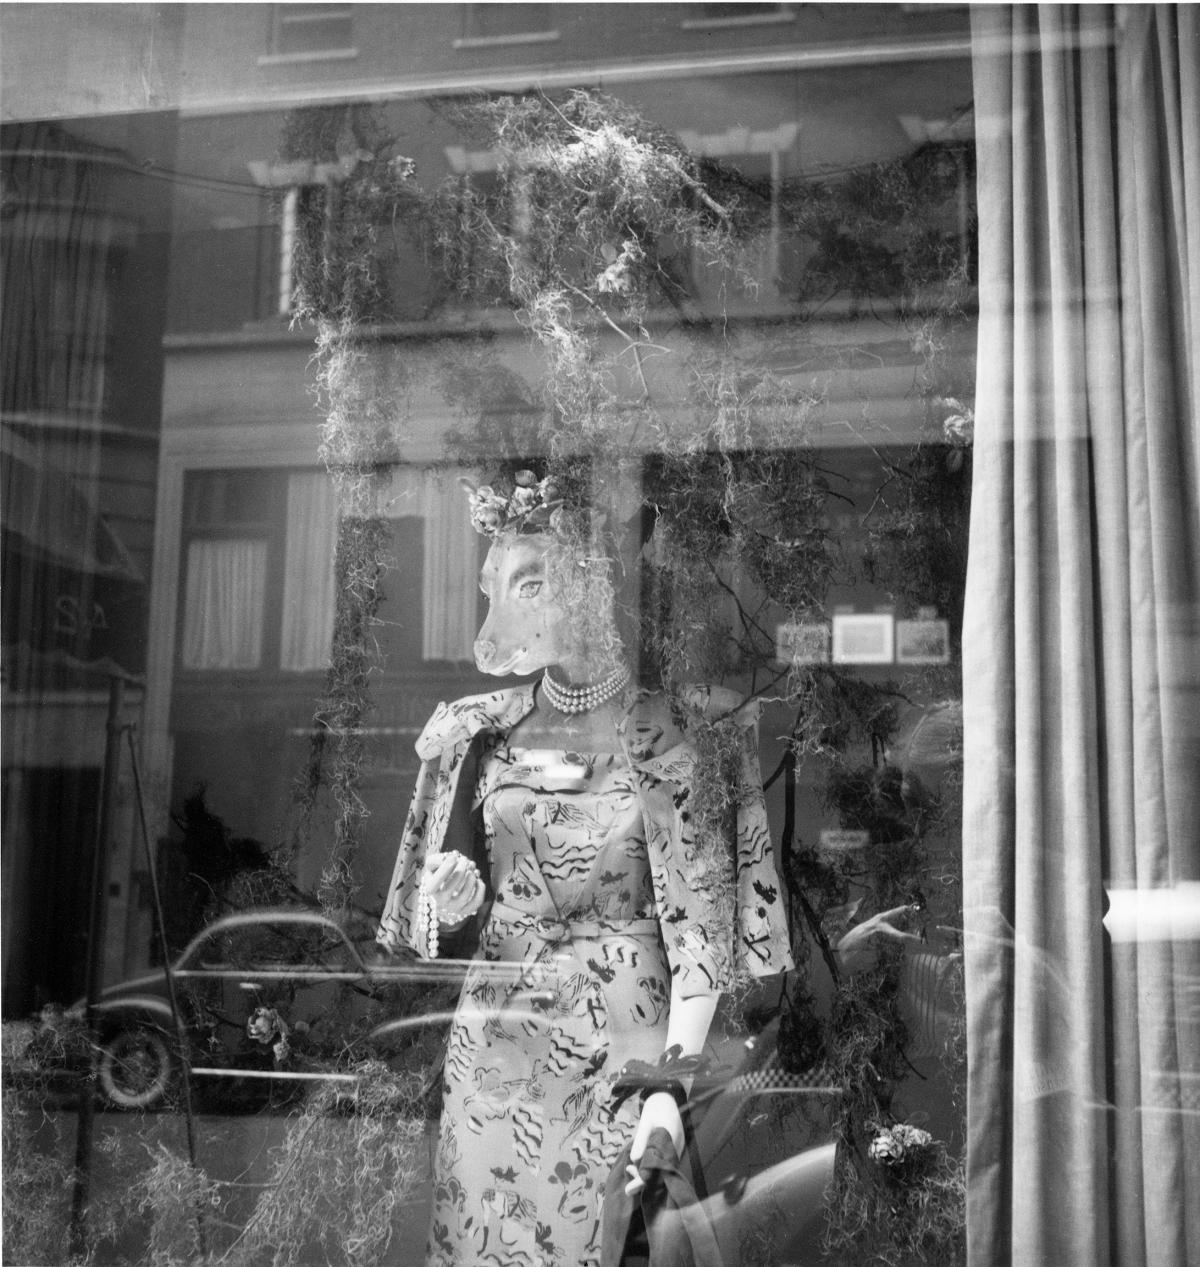 A cow-headed mannequin wears a floral dress and matching jacket in a shop window